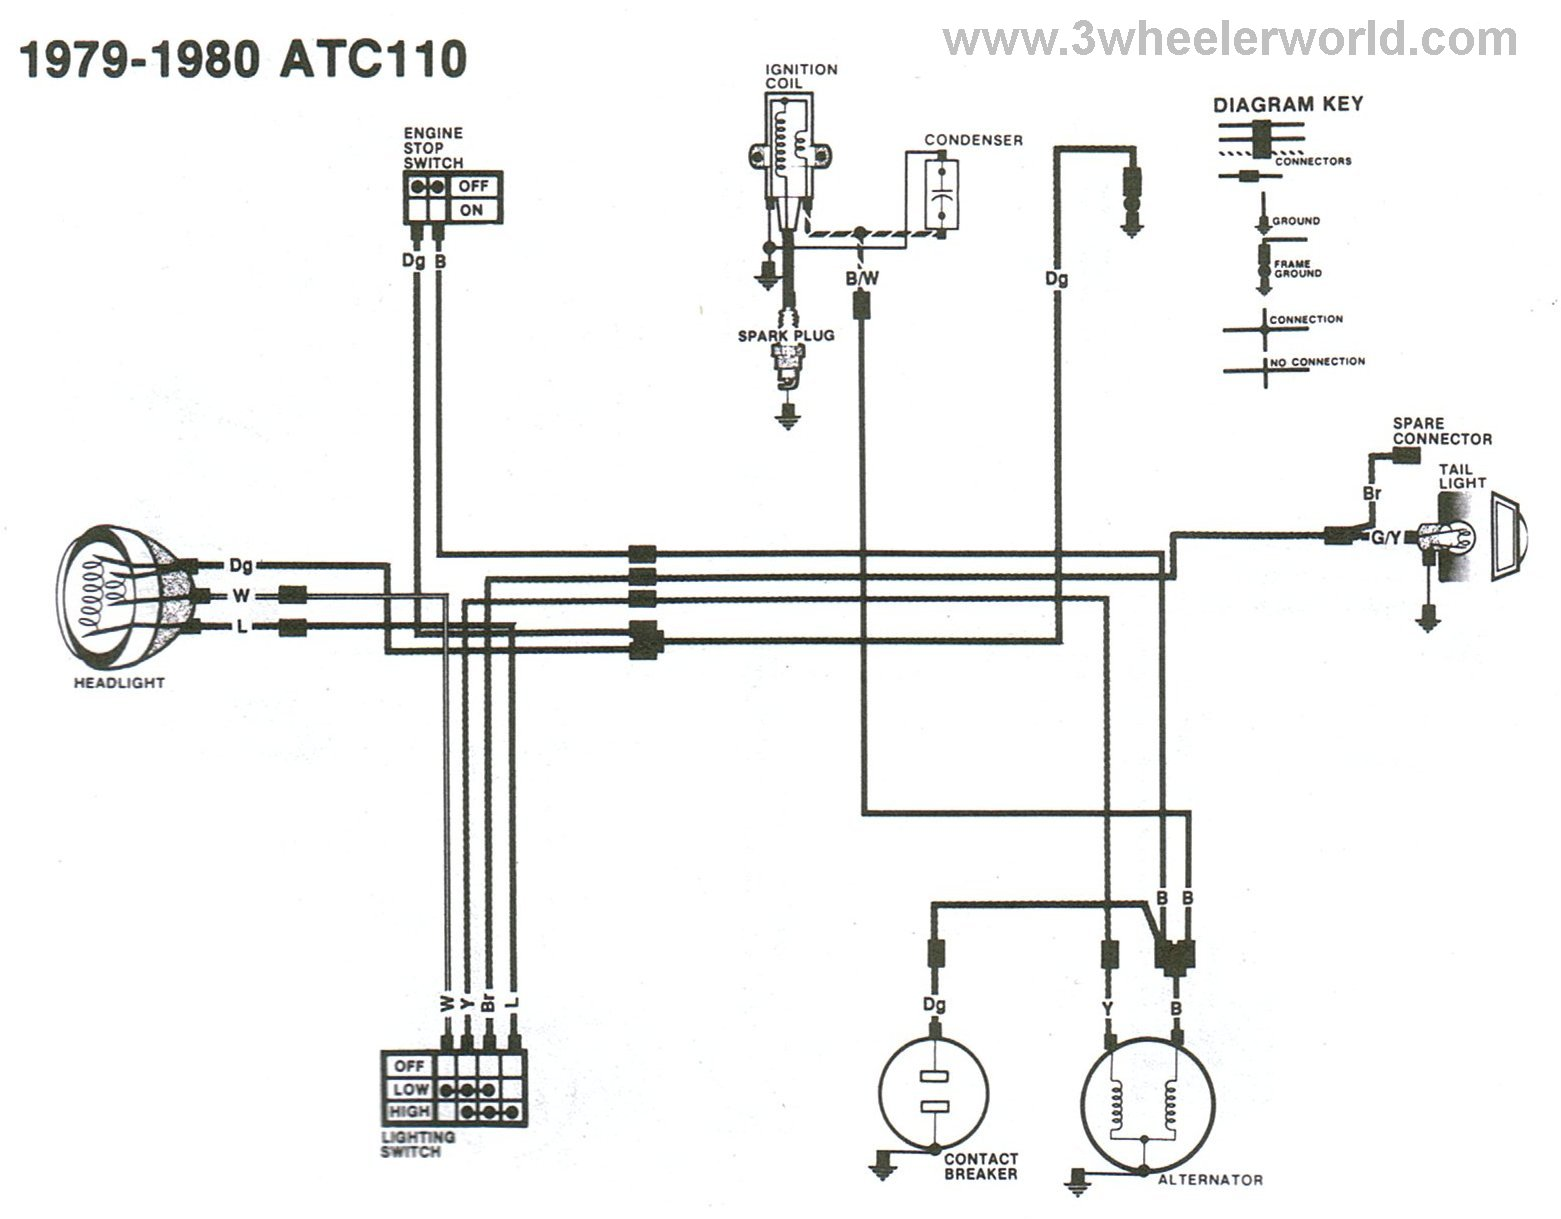 ATC110x79Thru80 3 wheeler world tech help honda wiring diagrams wiring schematic coolster 110cc 4 wheeler at reclaimingppi.co